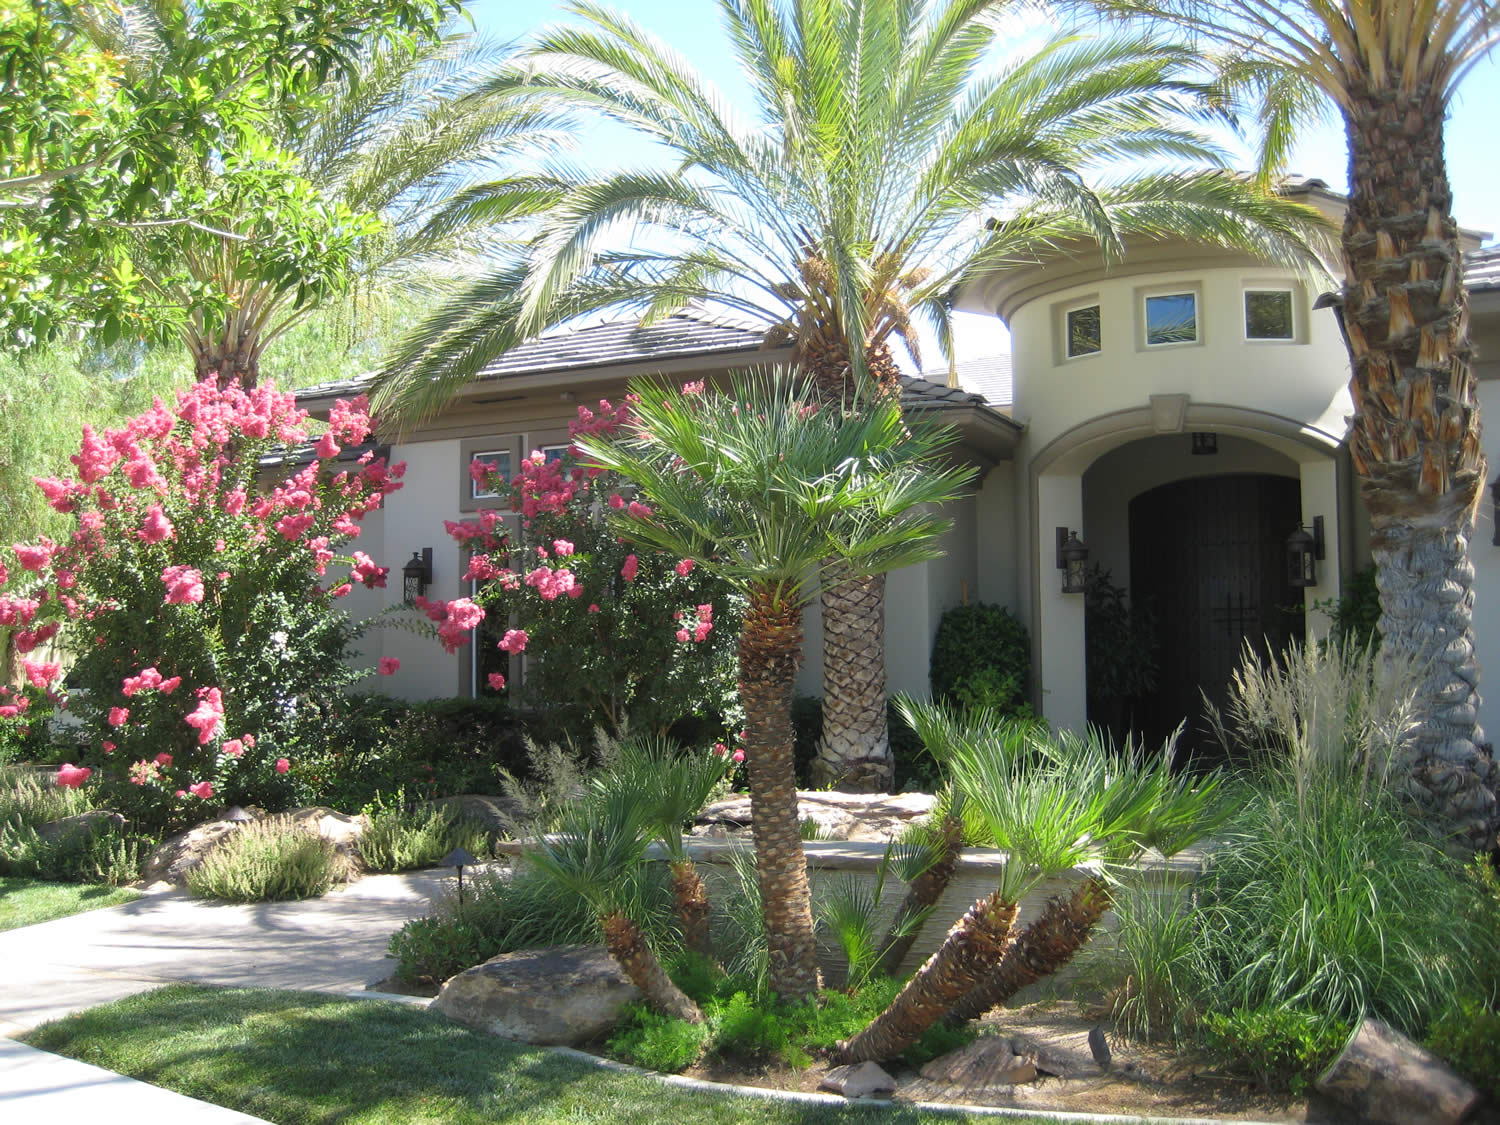 Landscape Architectural Services & Designs By Creative Las Vegas Landscape Architect Jonathan Spears, a licensed landscape architect in Nevada and California.